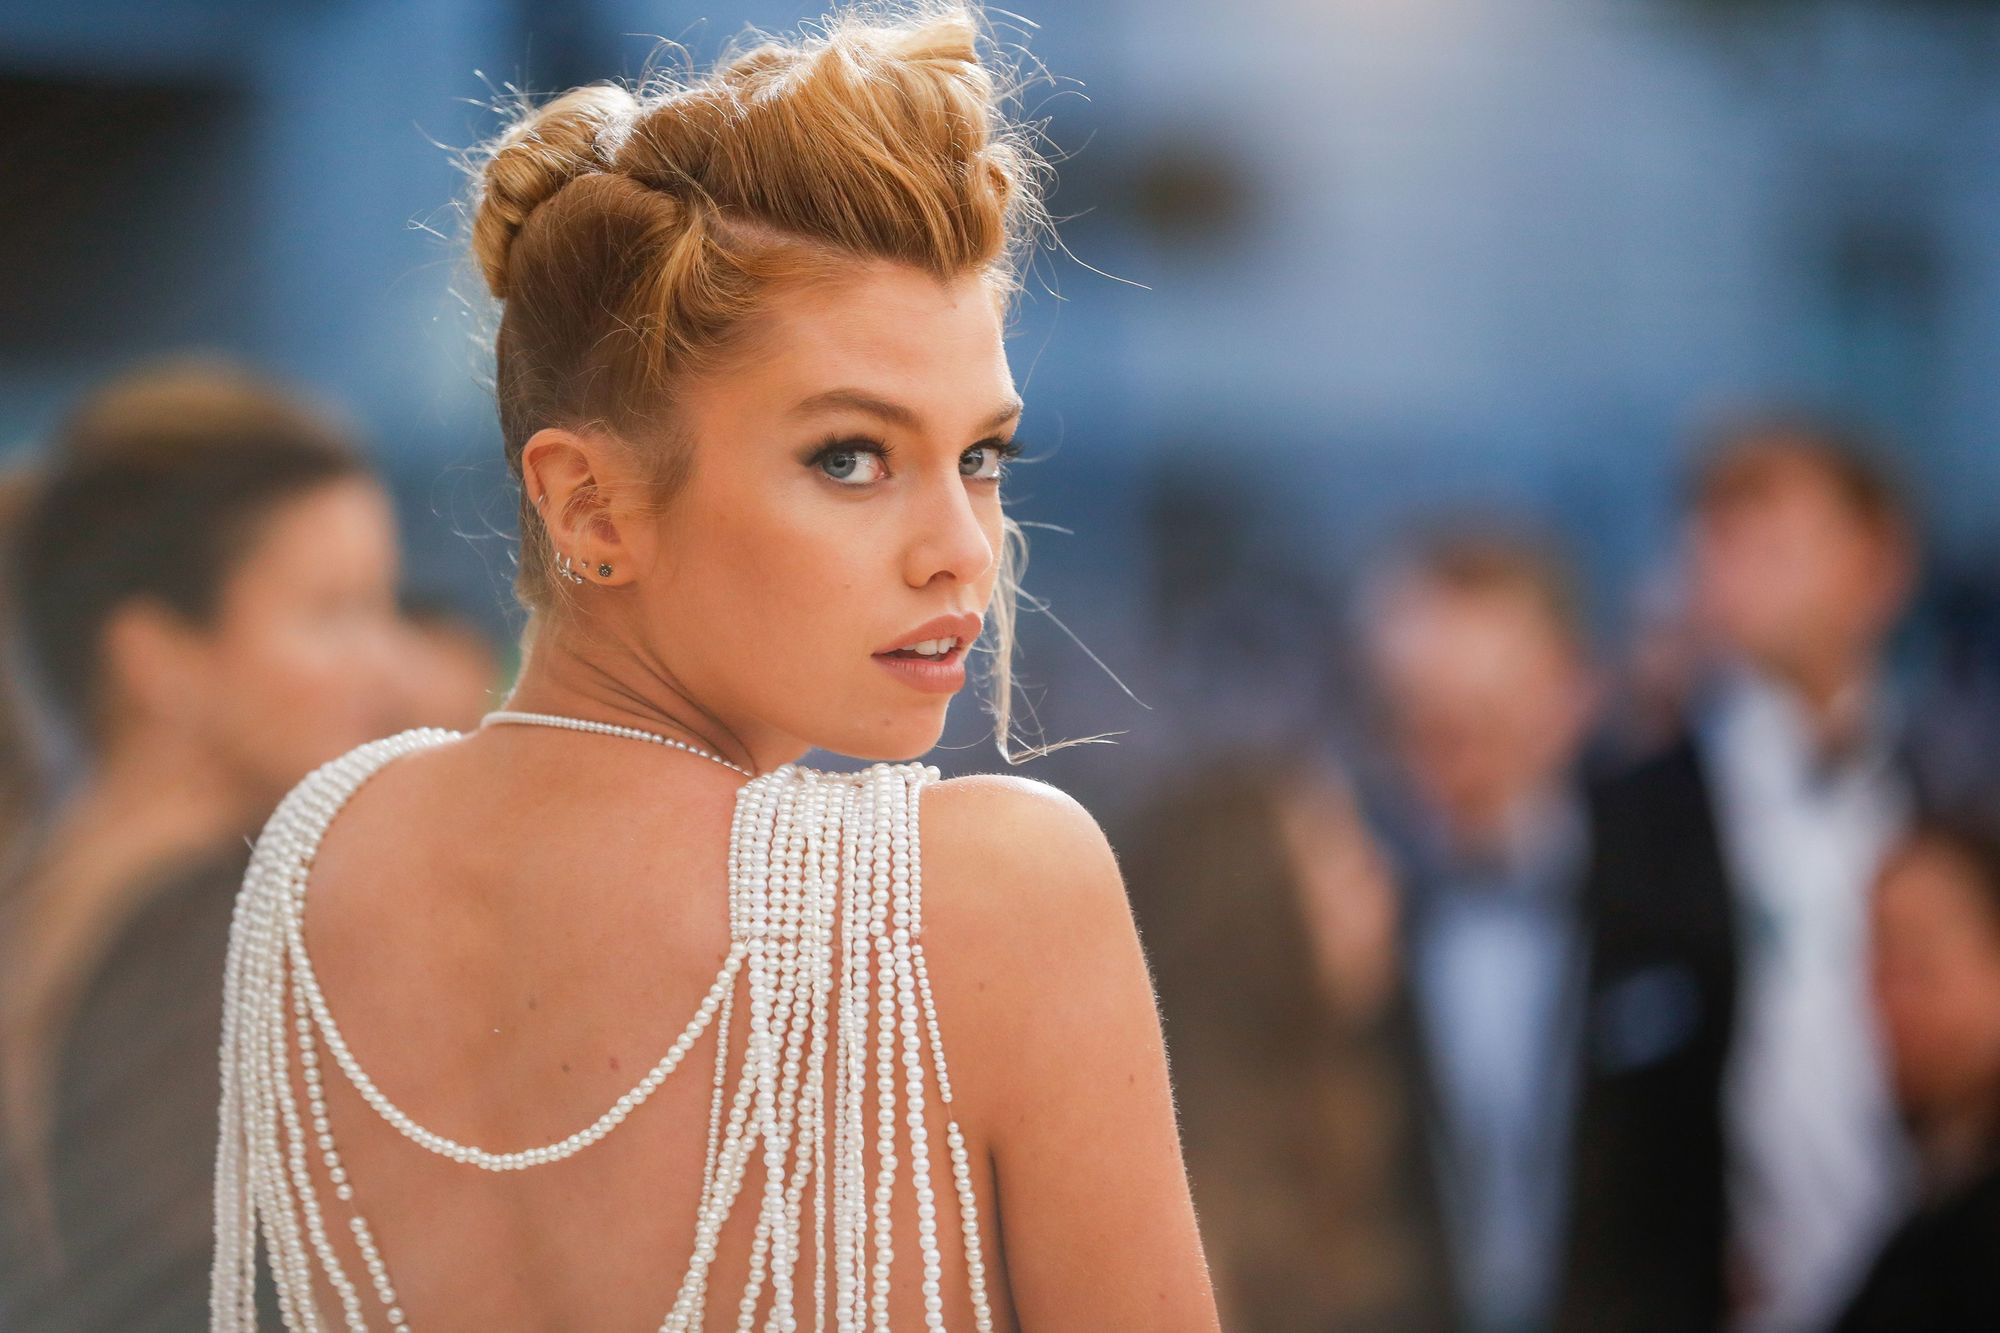 Vintage short hair: Close up shot of Stella Maxwell with short bronde hair styled into a quiff at the front and a bun updo at the back on the red carpet